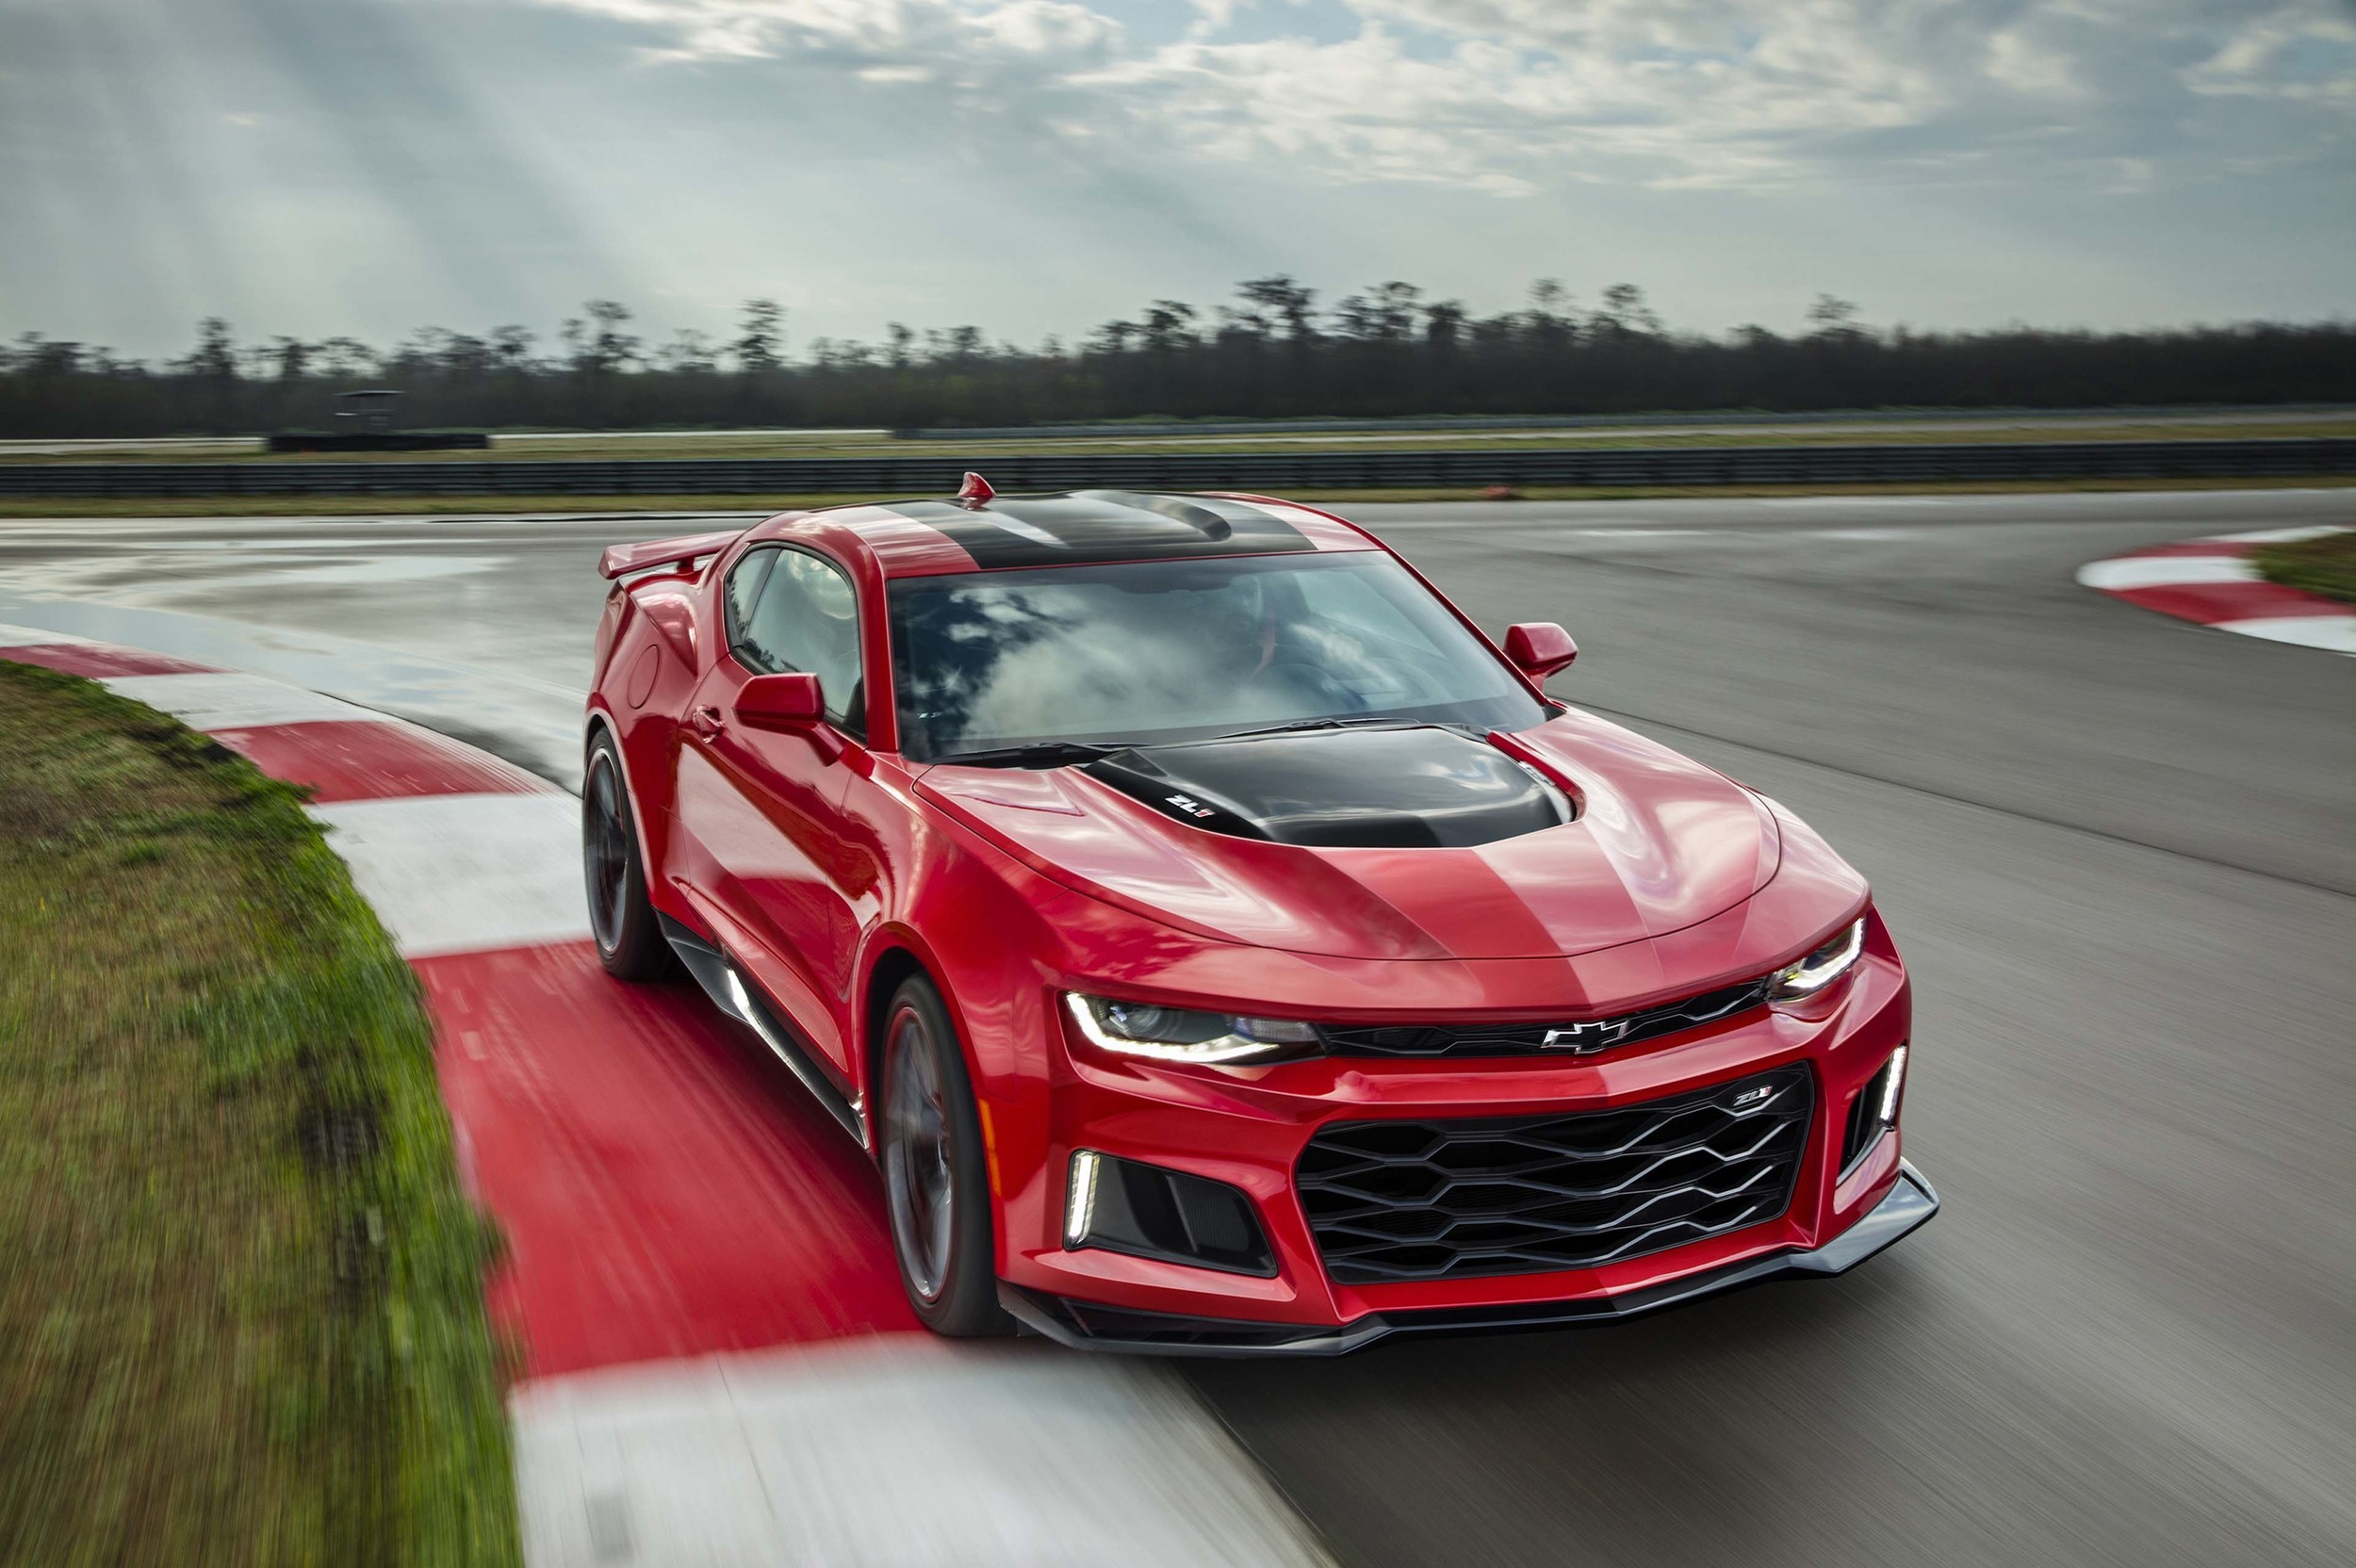 2017 Chevrolet Camaro Zl1 Has 640 Hp Corvette Z06